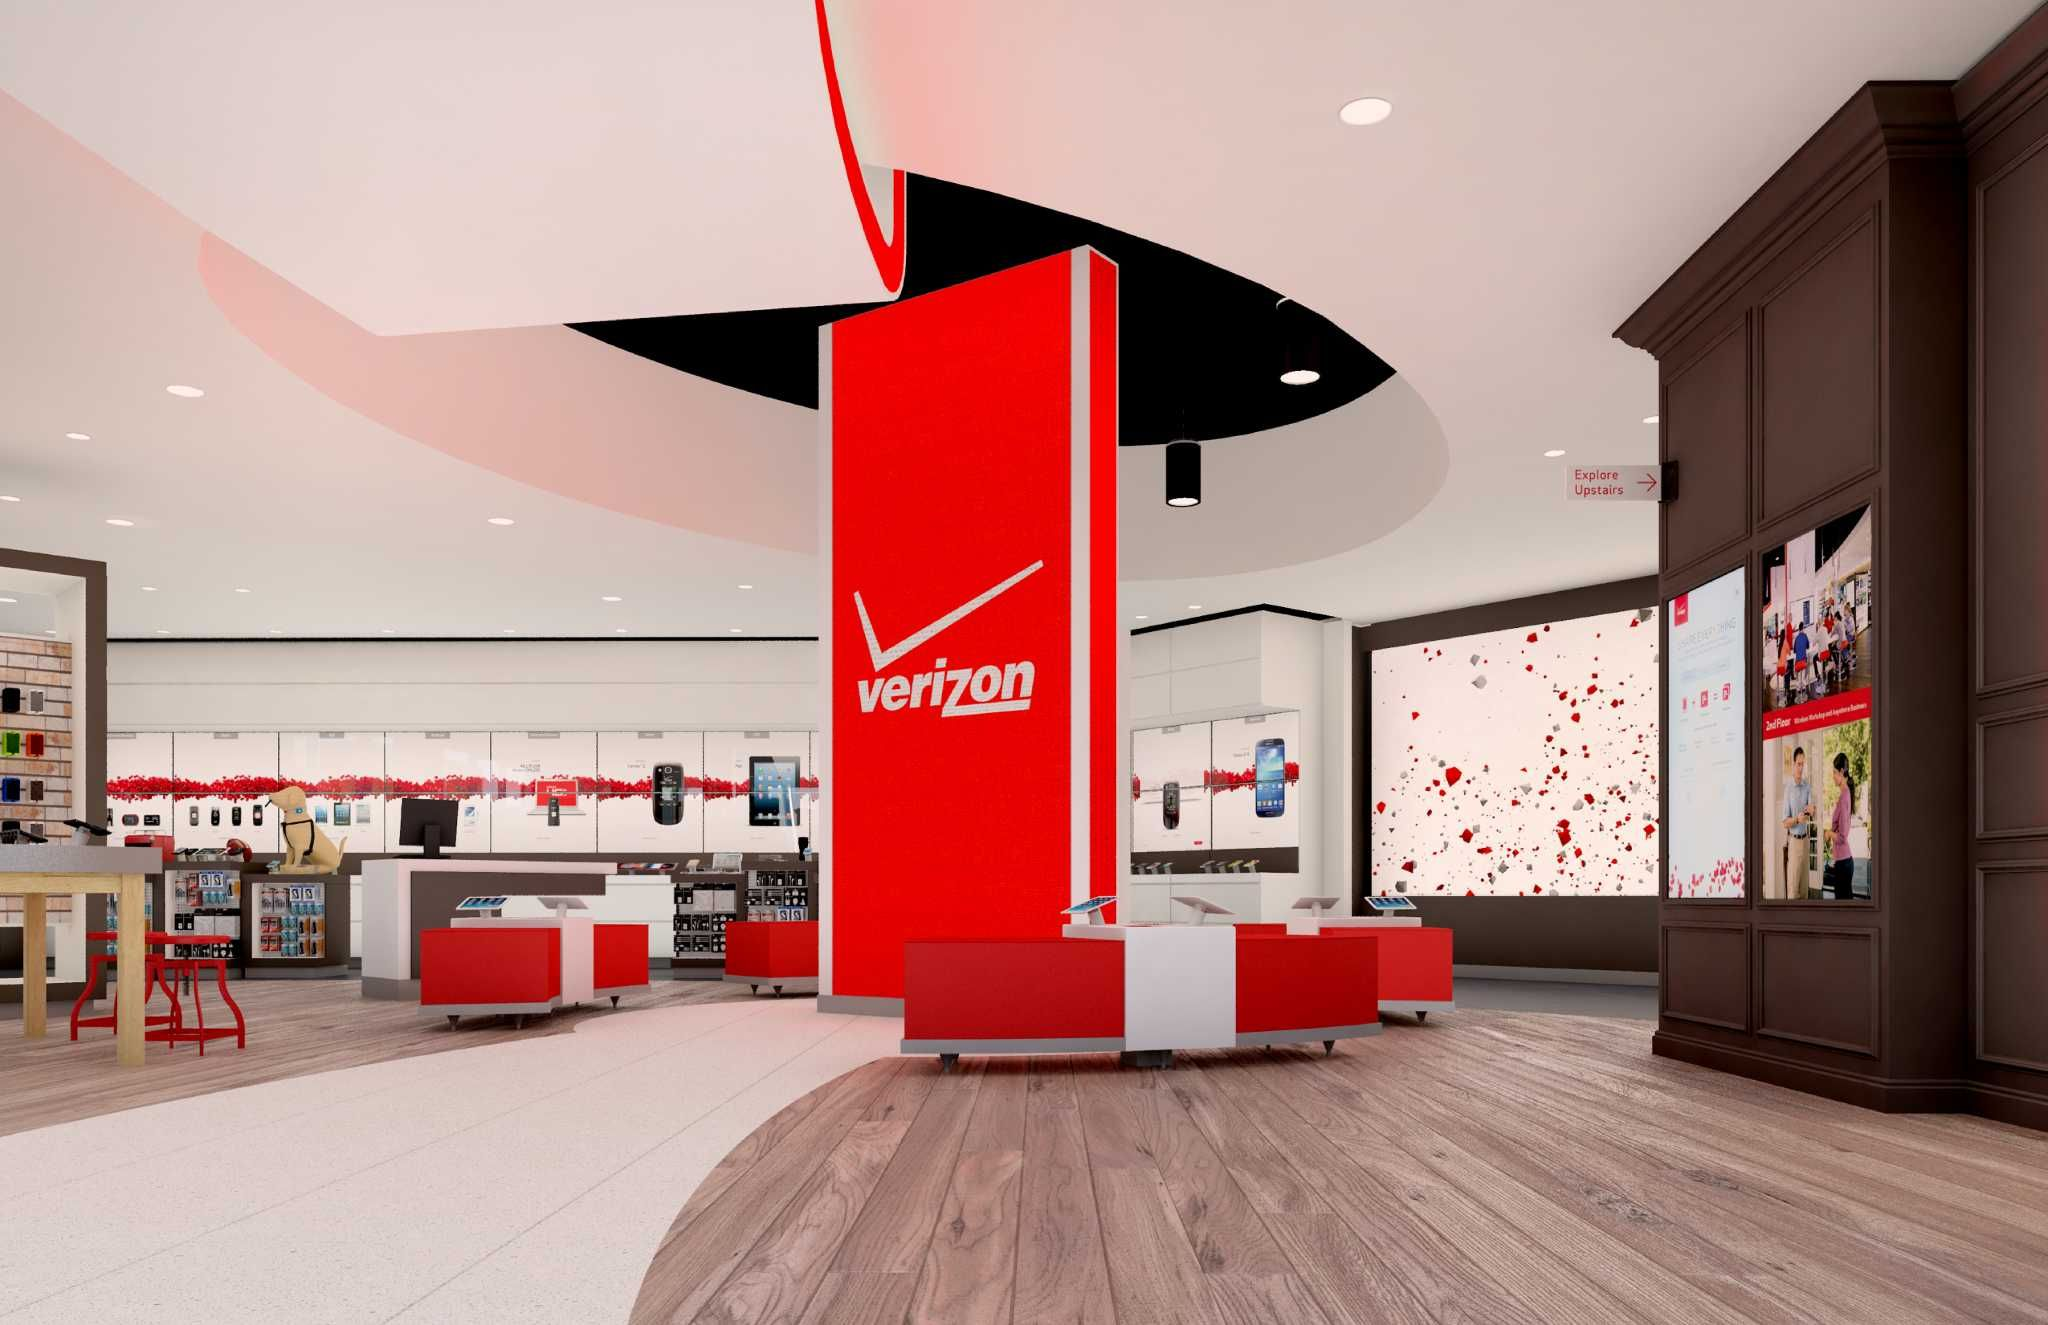 Verizon wants store to be an interactive Destination